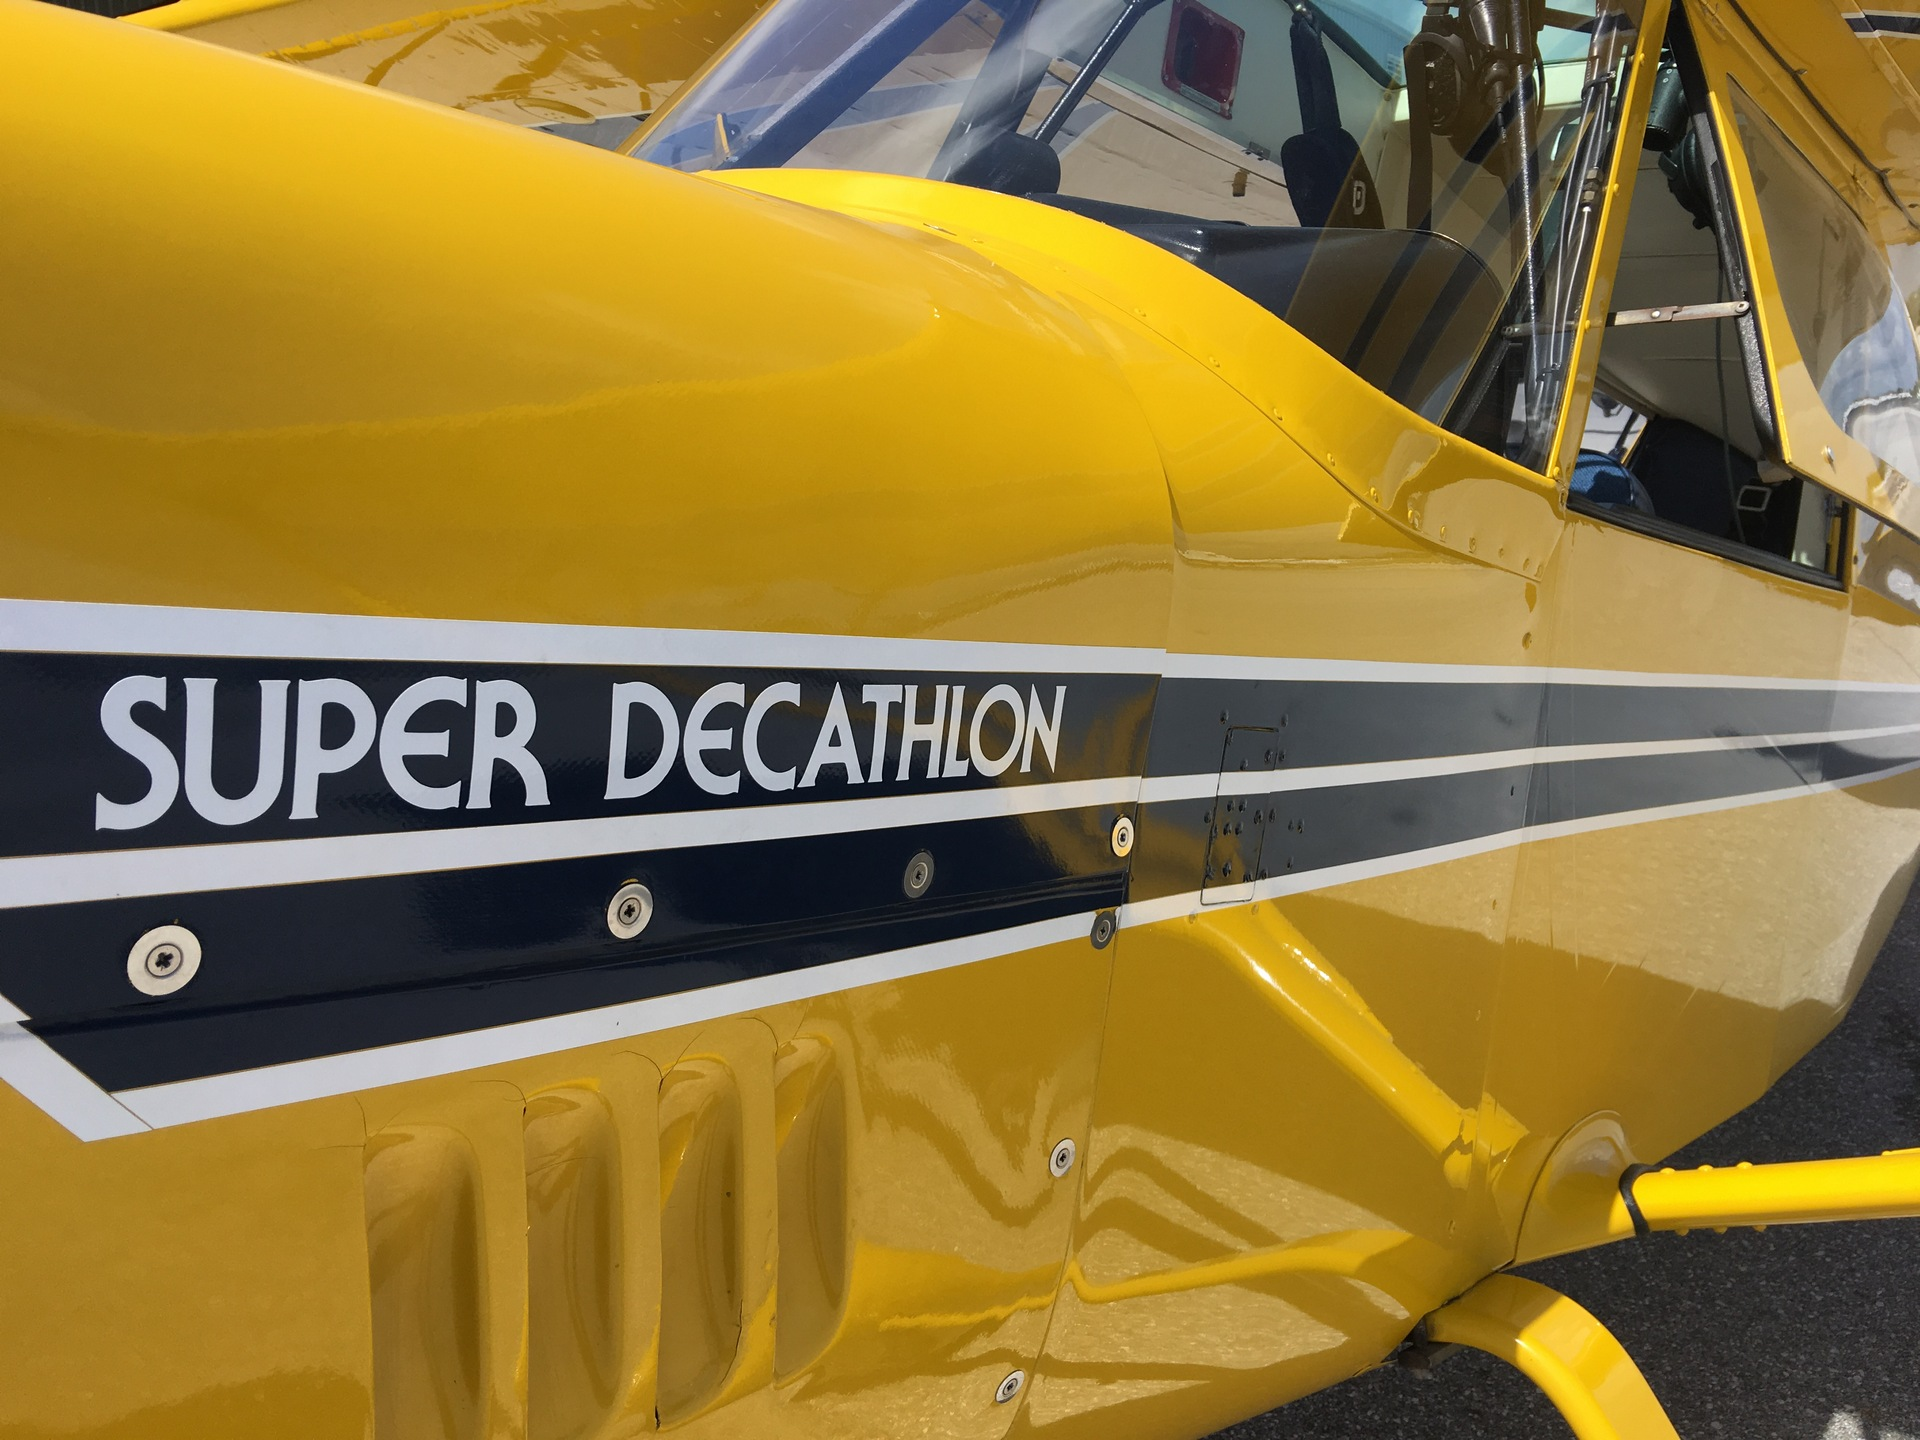 Super Decathlon Tailwheel Training